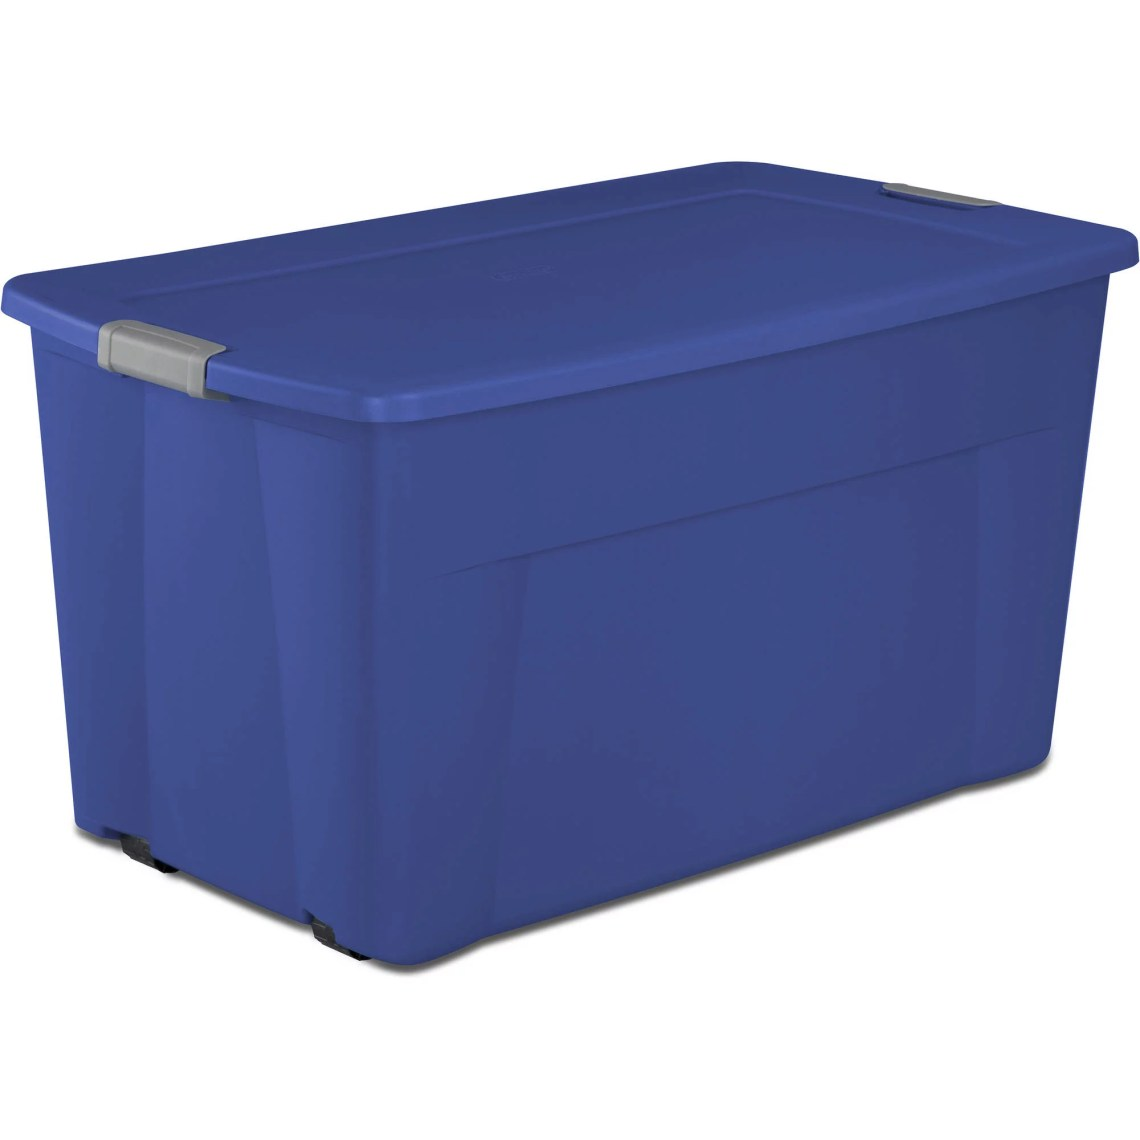 Popular 100 Gallon Clear Storage Bins - a0af87c5-bcdd-4d5a-80b0-80095b866488_1  Best Photo Reference_795100.jpeg